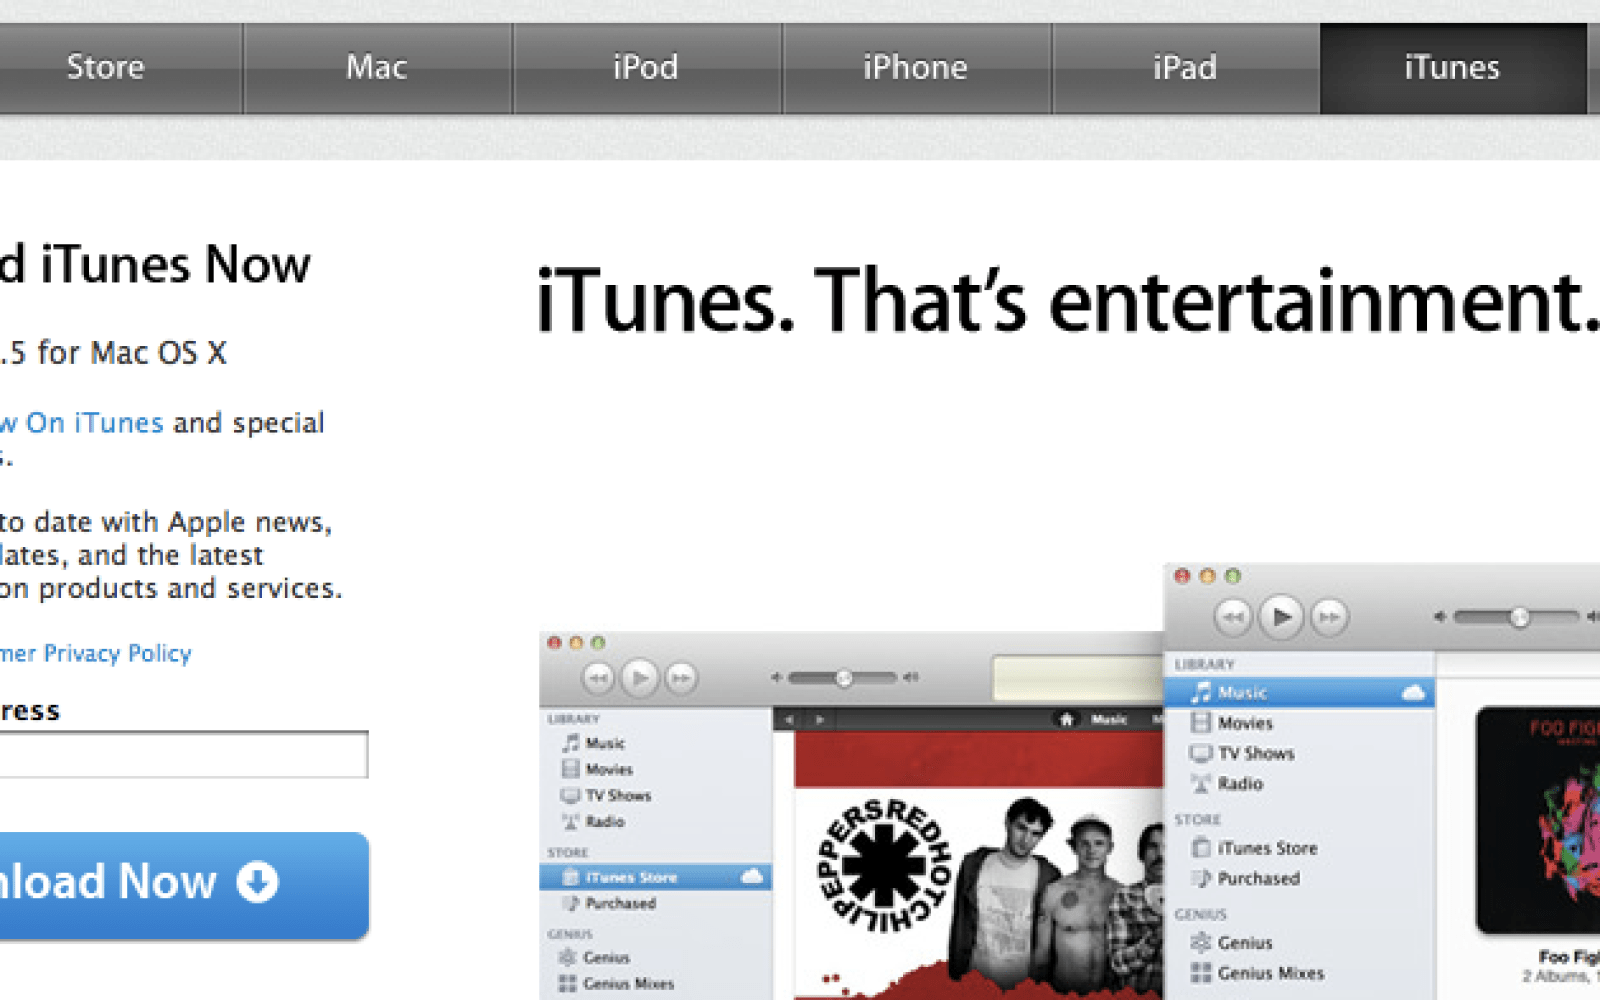 Itunes 10. 5 is out, get downloading 9to5mac.